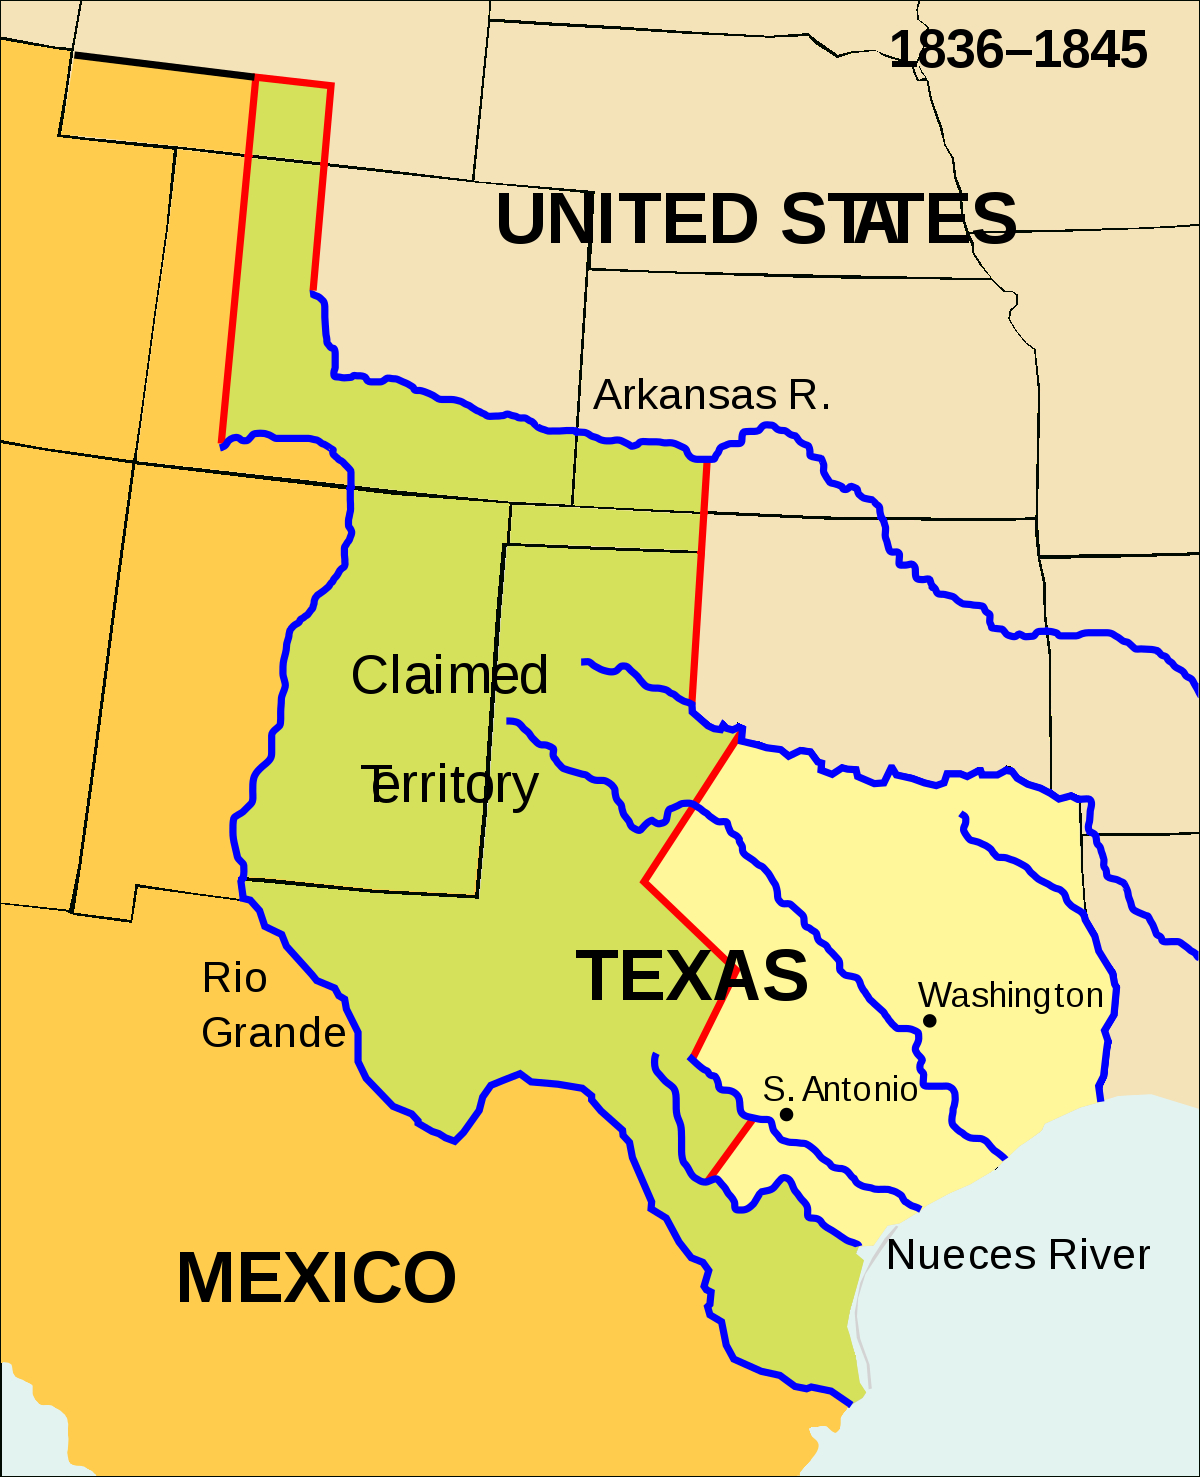 Texan Santa Fe Expedition - Wikipedia - Map Of Texas Showing Santa Fe